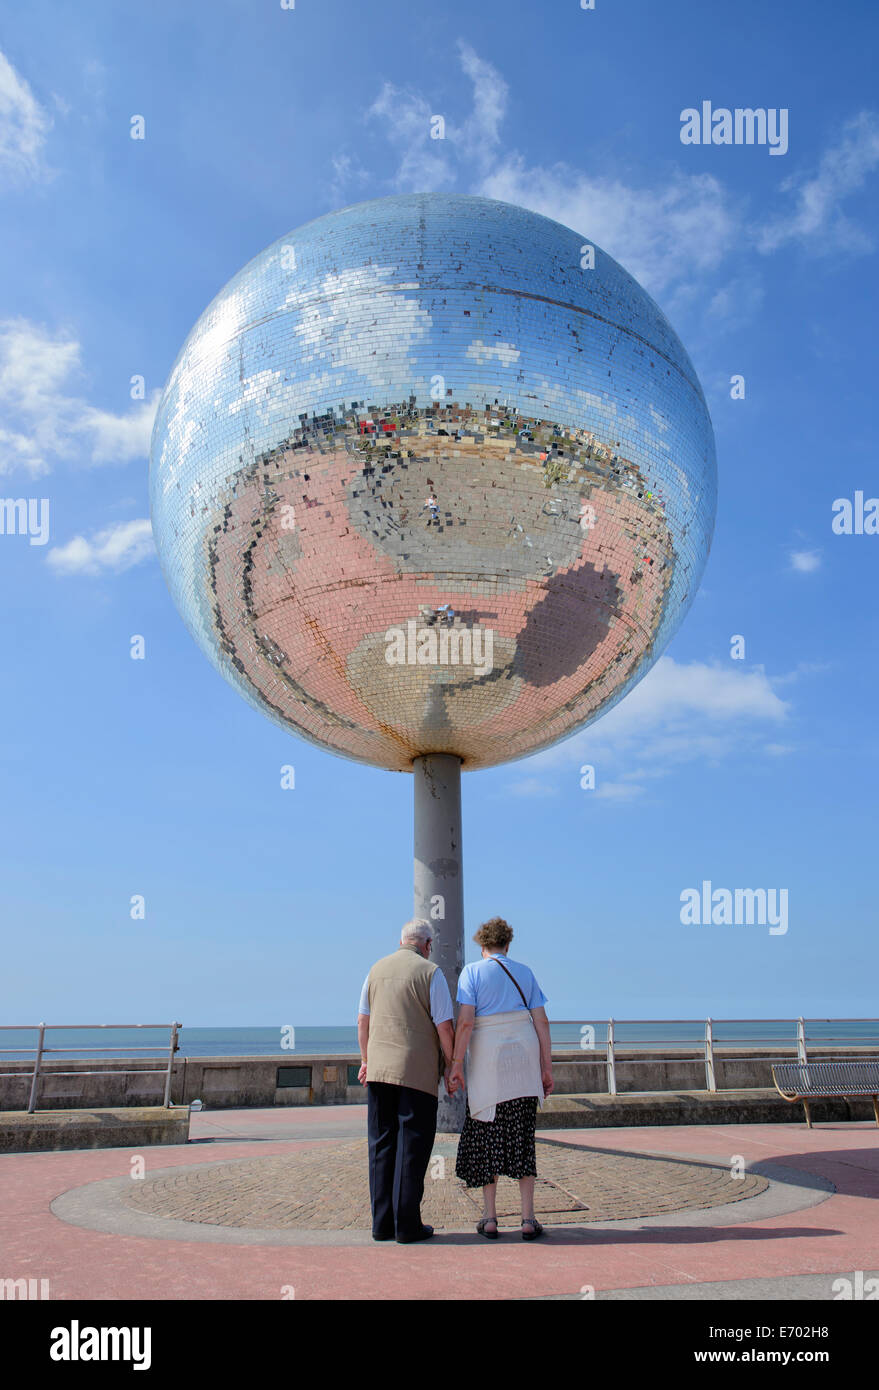 Two people looking at the rotating giant mirror ball on the South Shore promenade in Blackpool, Lancashire, UK - Stock Image